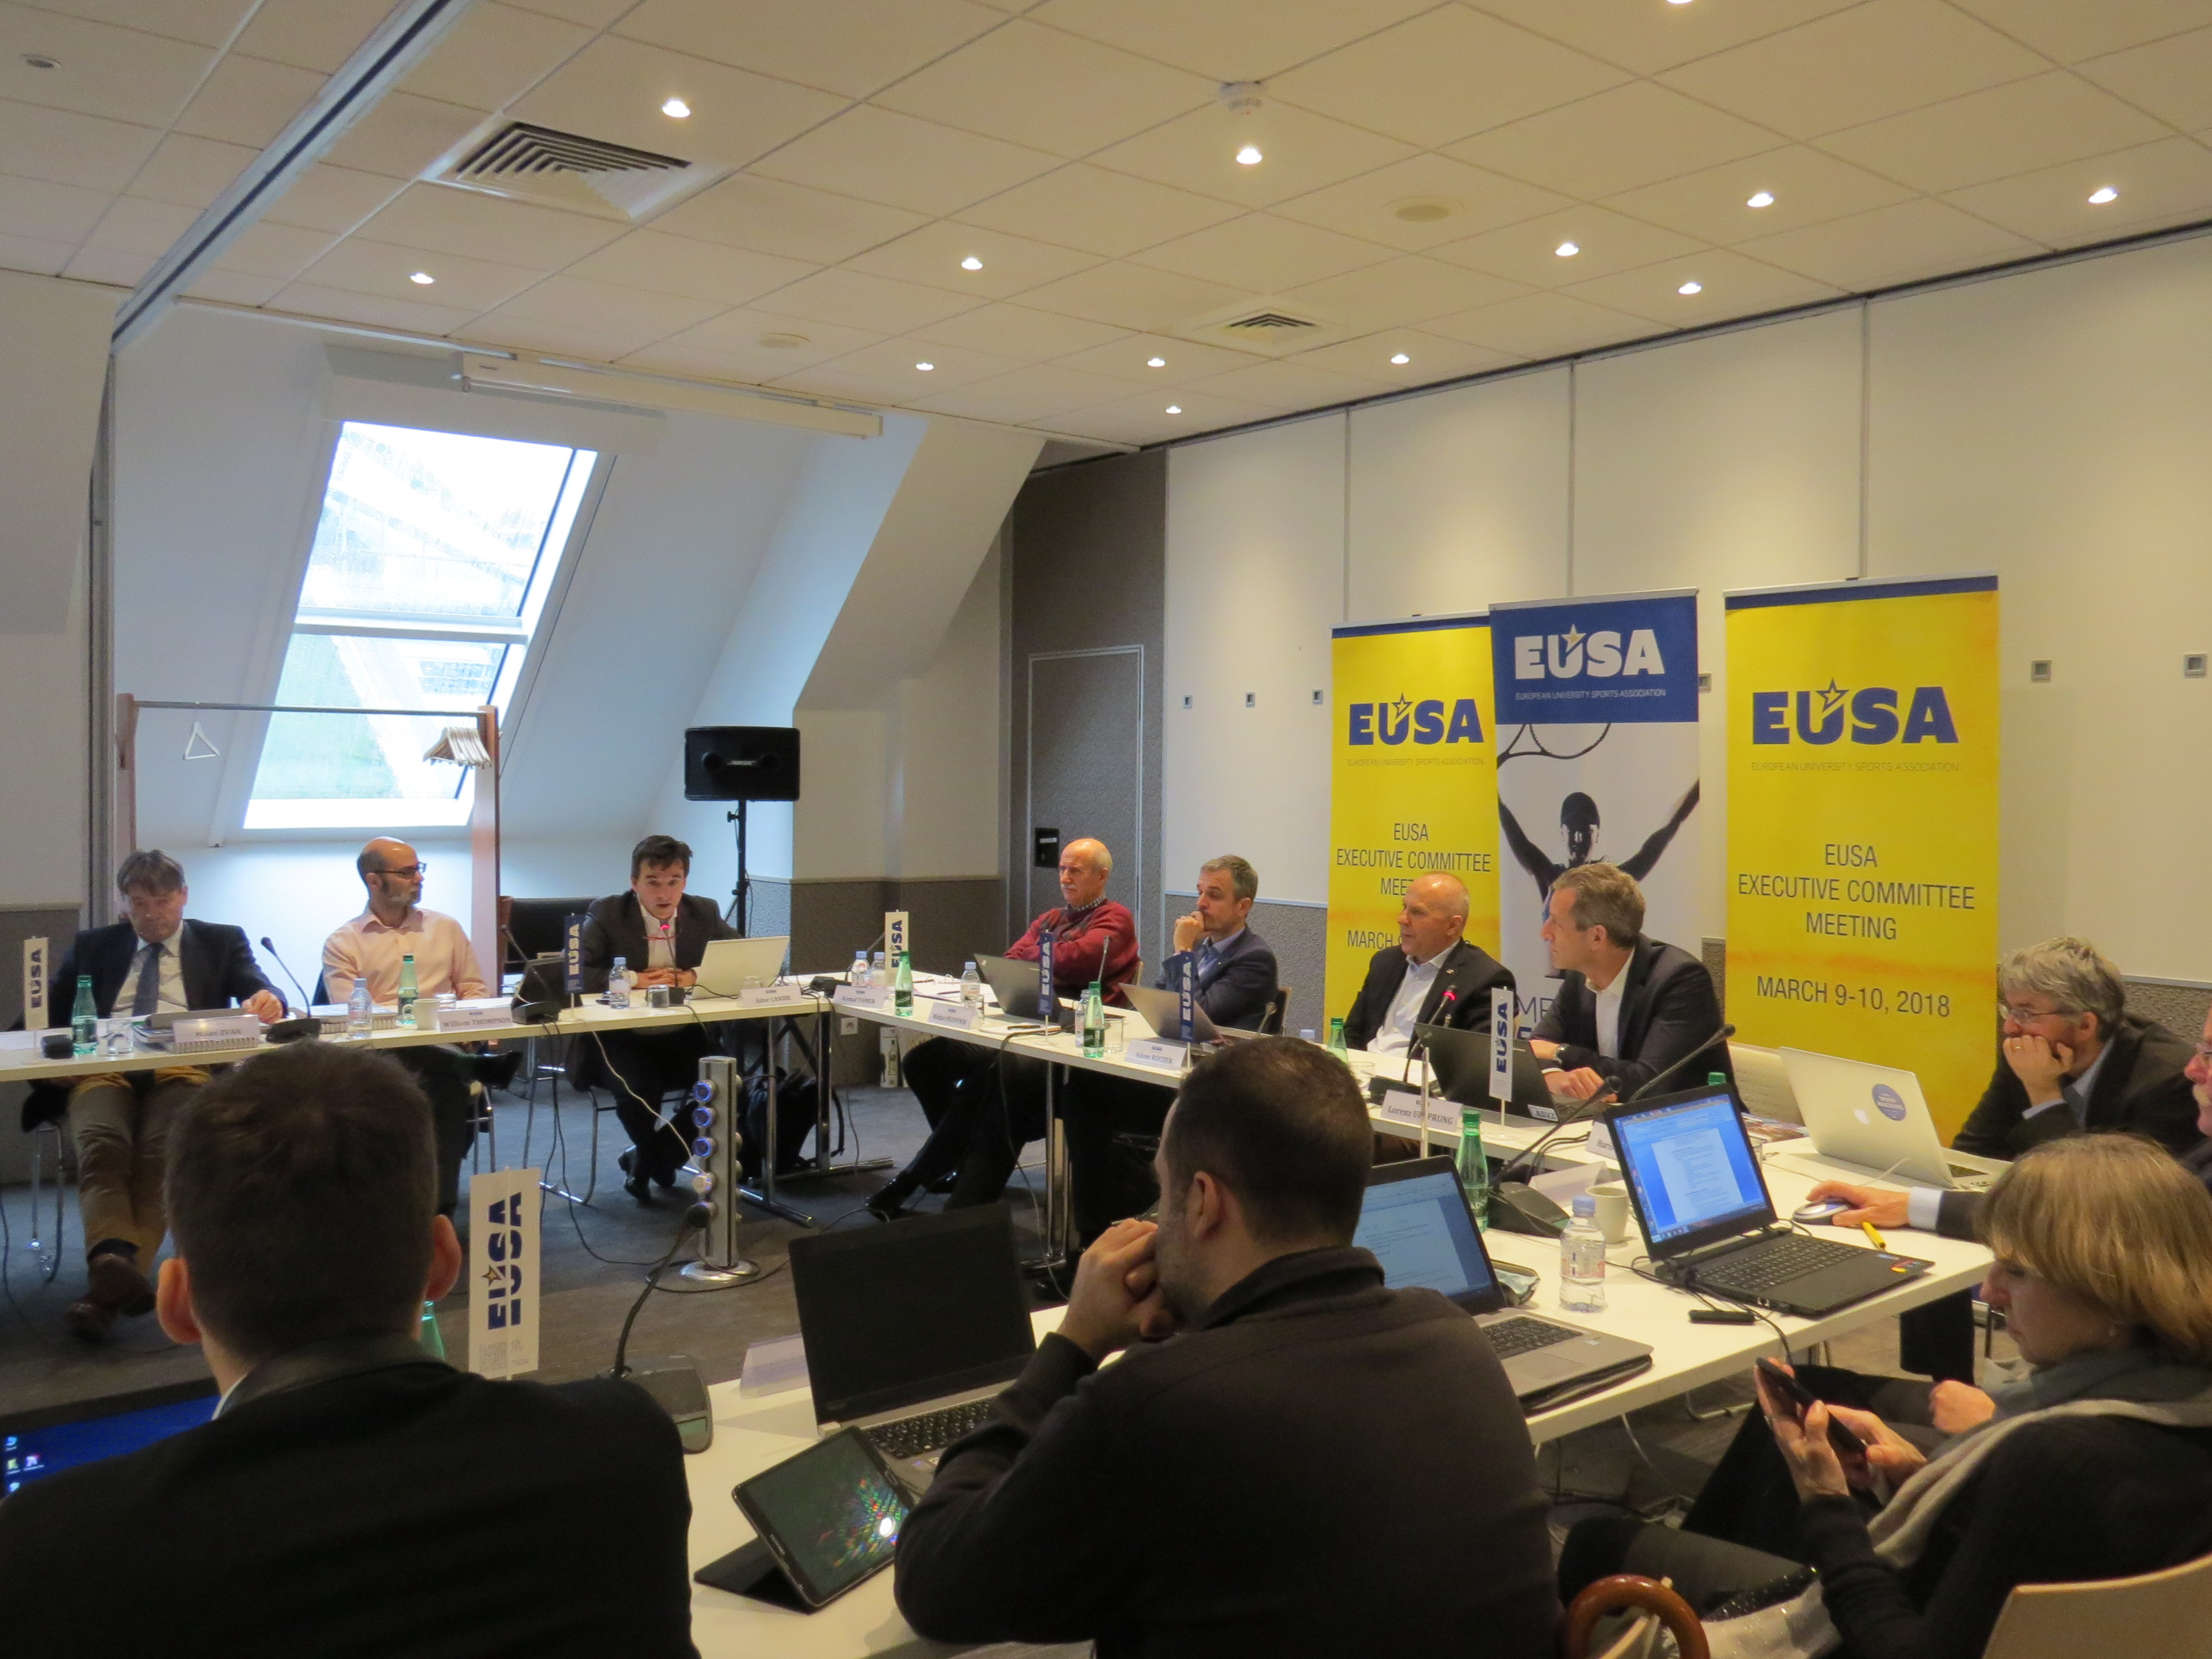 Executive Committee Meeting Paris